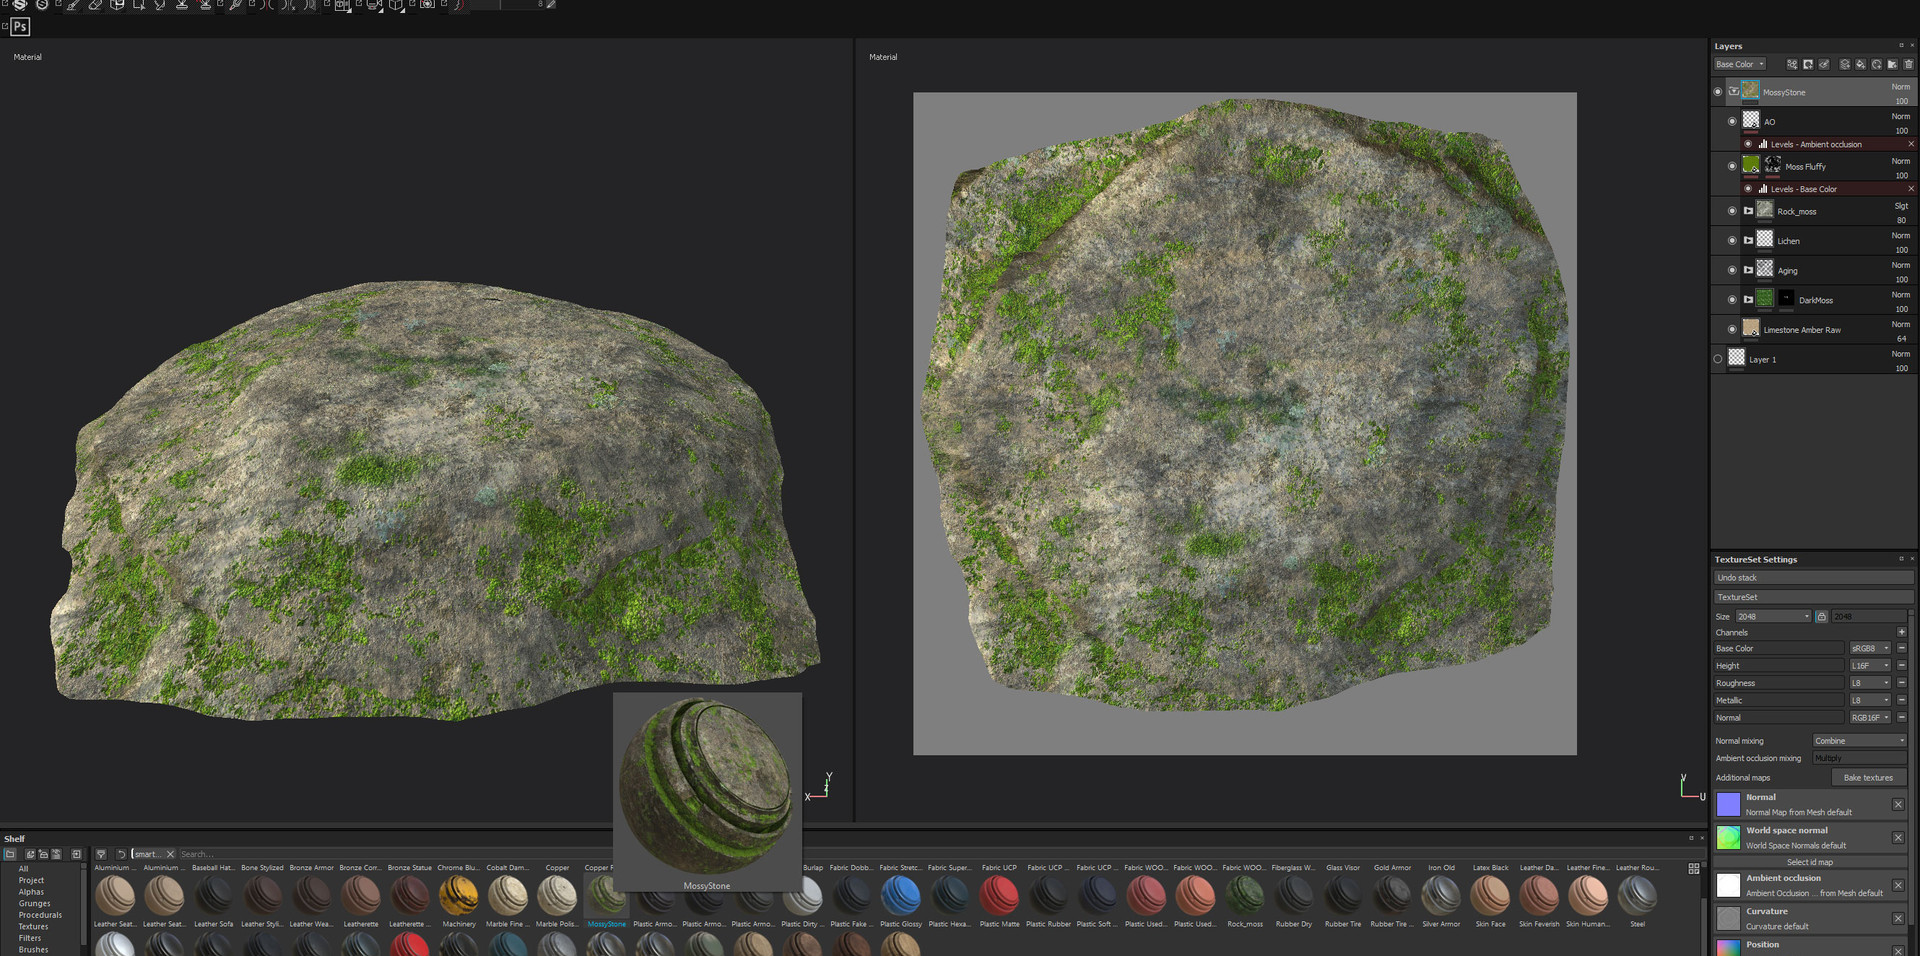 To create the rock at the base of the lantern I used Forester for Cinema 4D which has a handy rock generator. The texture is the same one as the lantern, which I simply saved as a Smart Material in Substance Painter and applied to the rock (which I unwrapped in 3D Coat first).